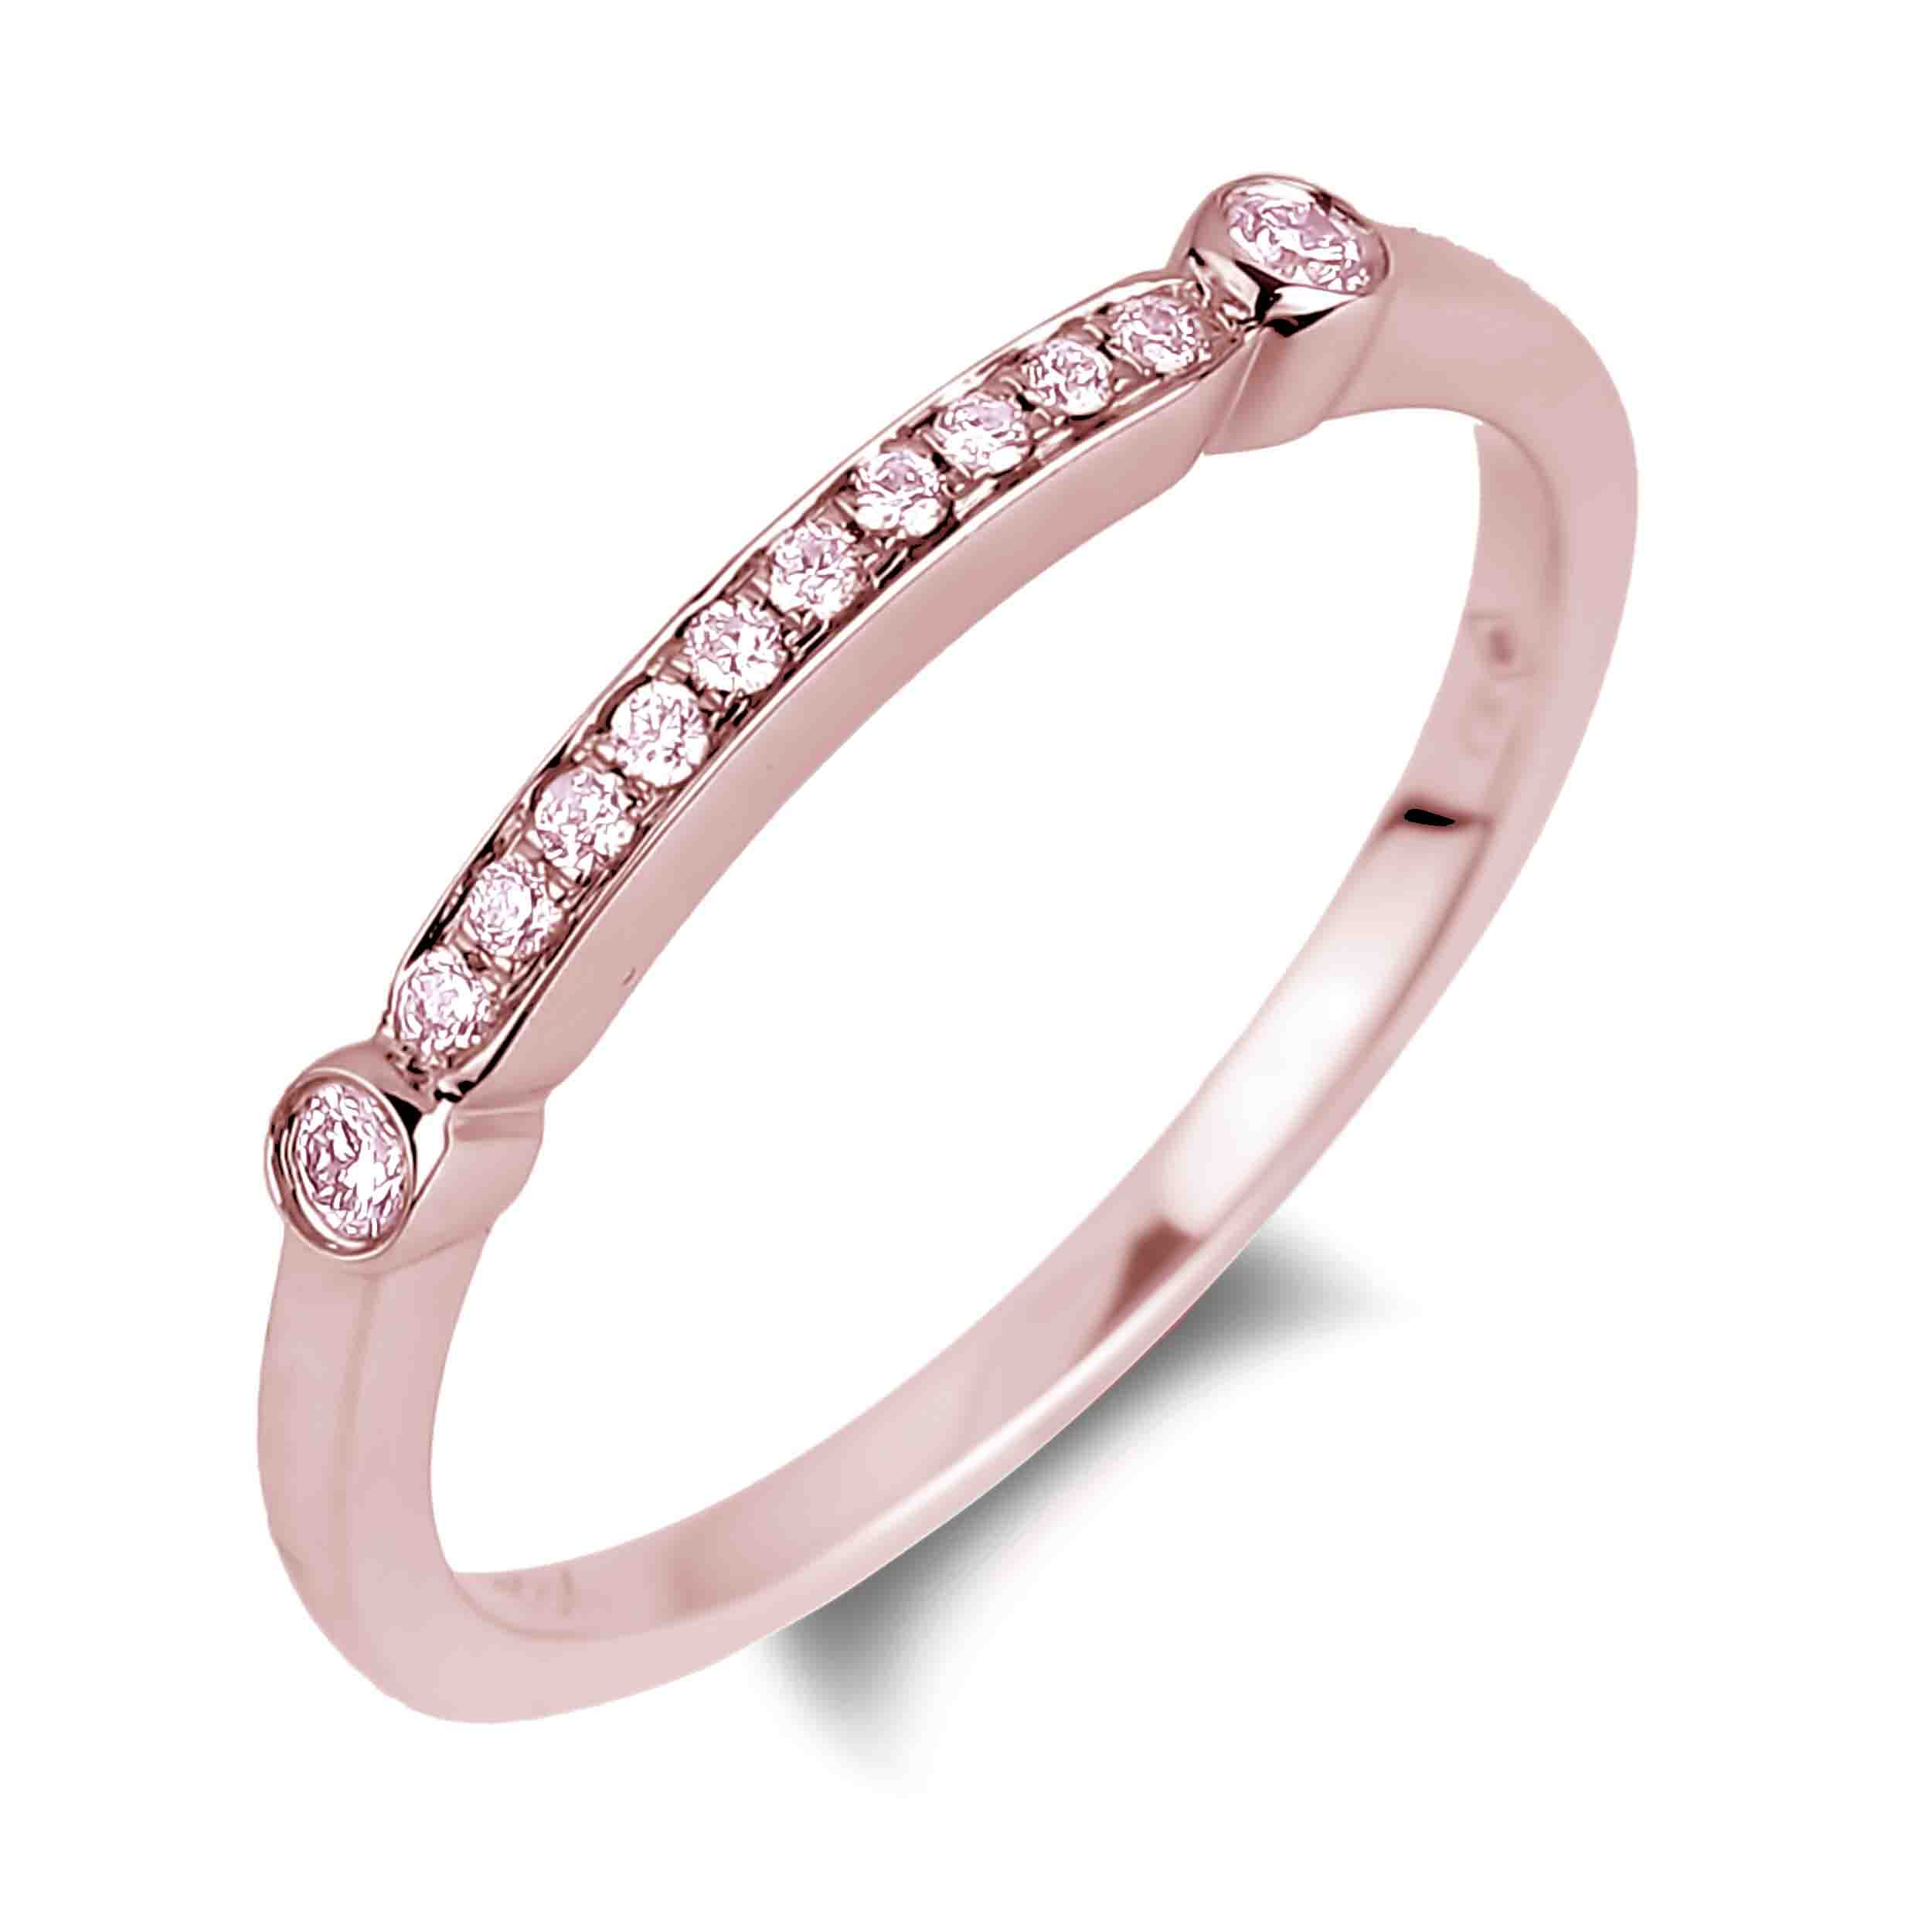 Fancy Pink Diamond Ladies Matching Wedding Band In Most Up To Date Certified Diamond Anniversary Bands In Rose Gold (View 13 of 25)